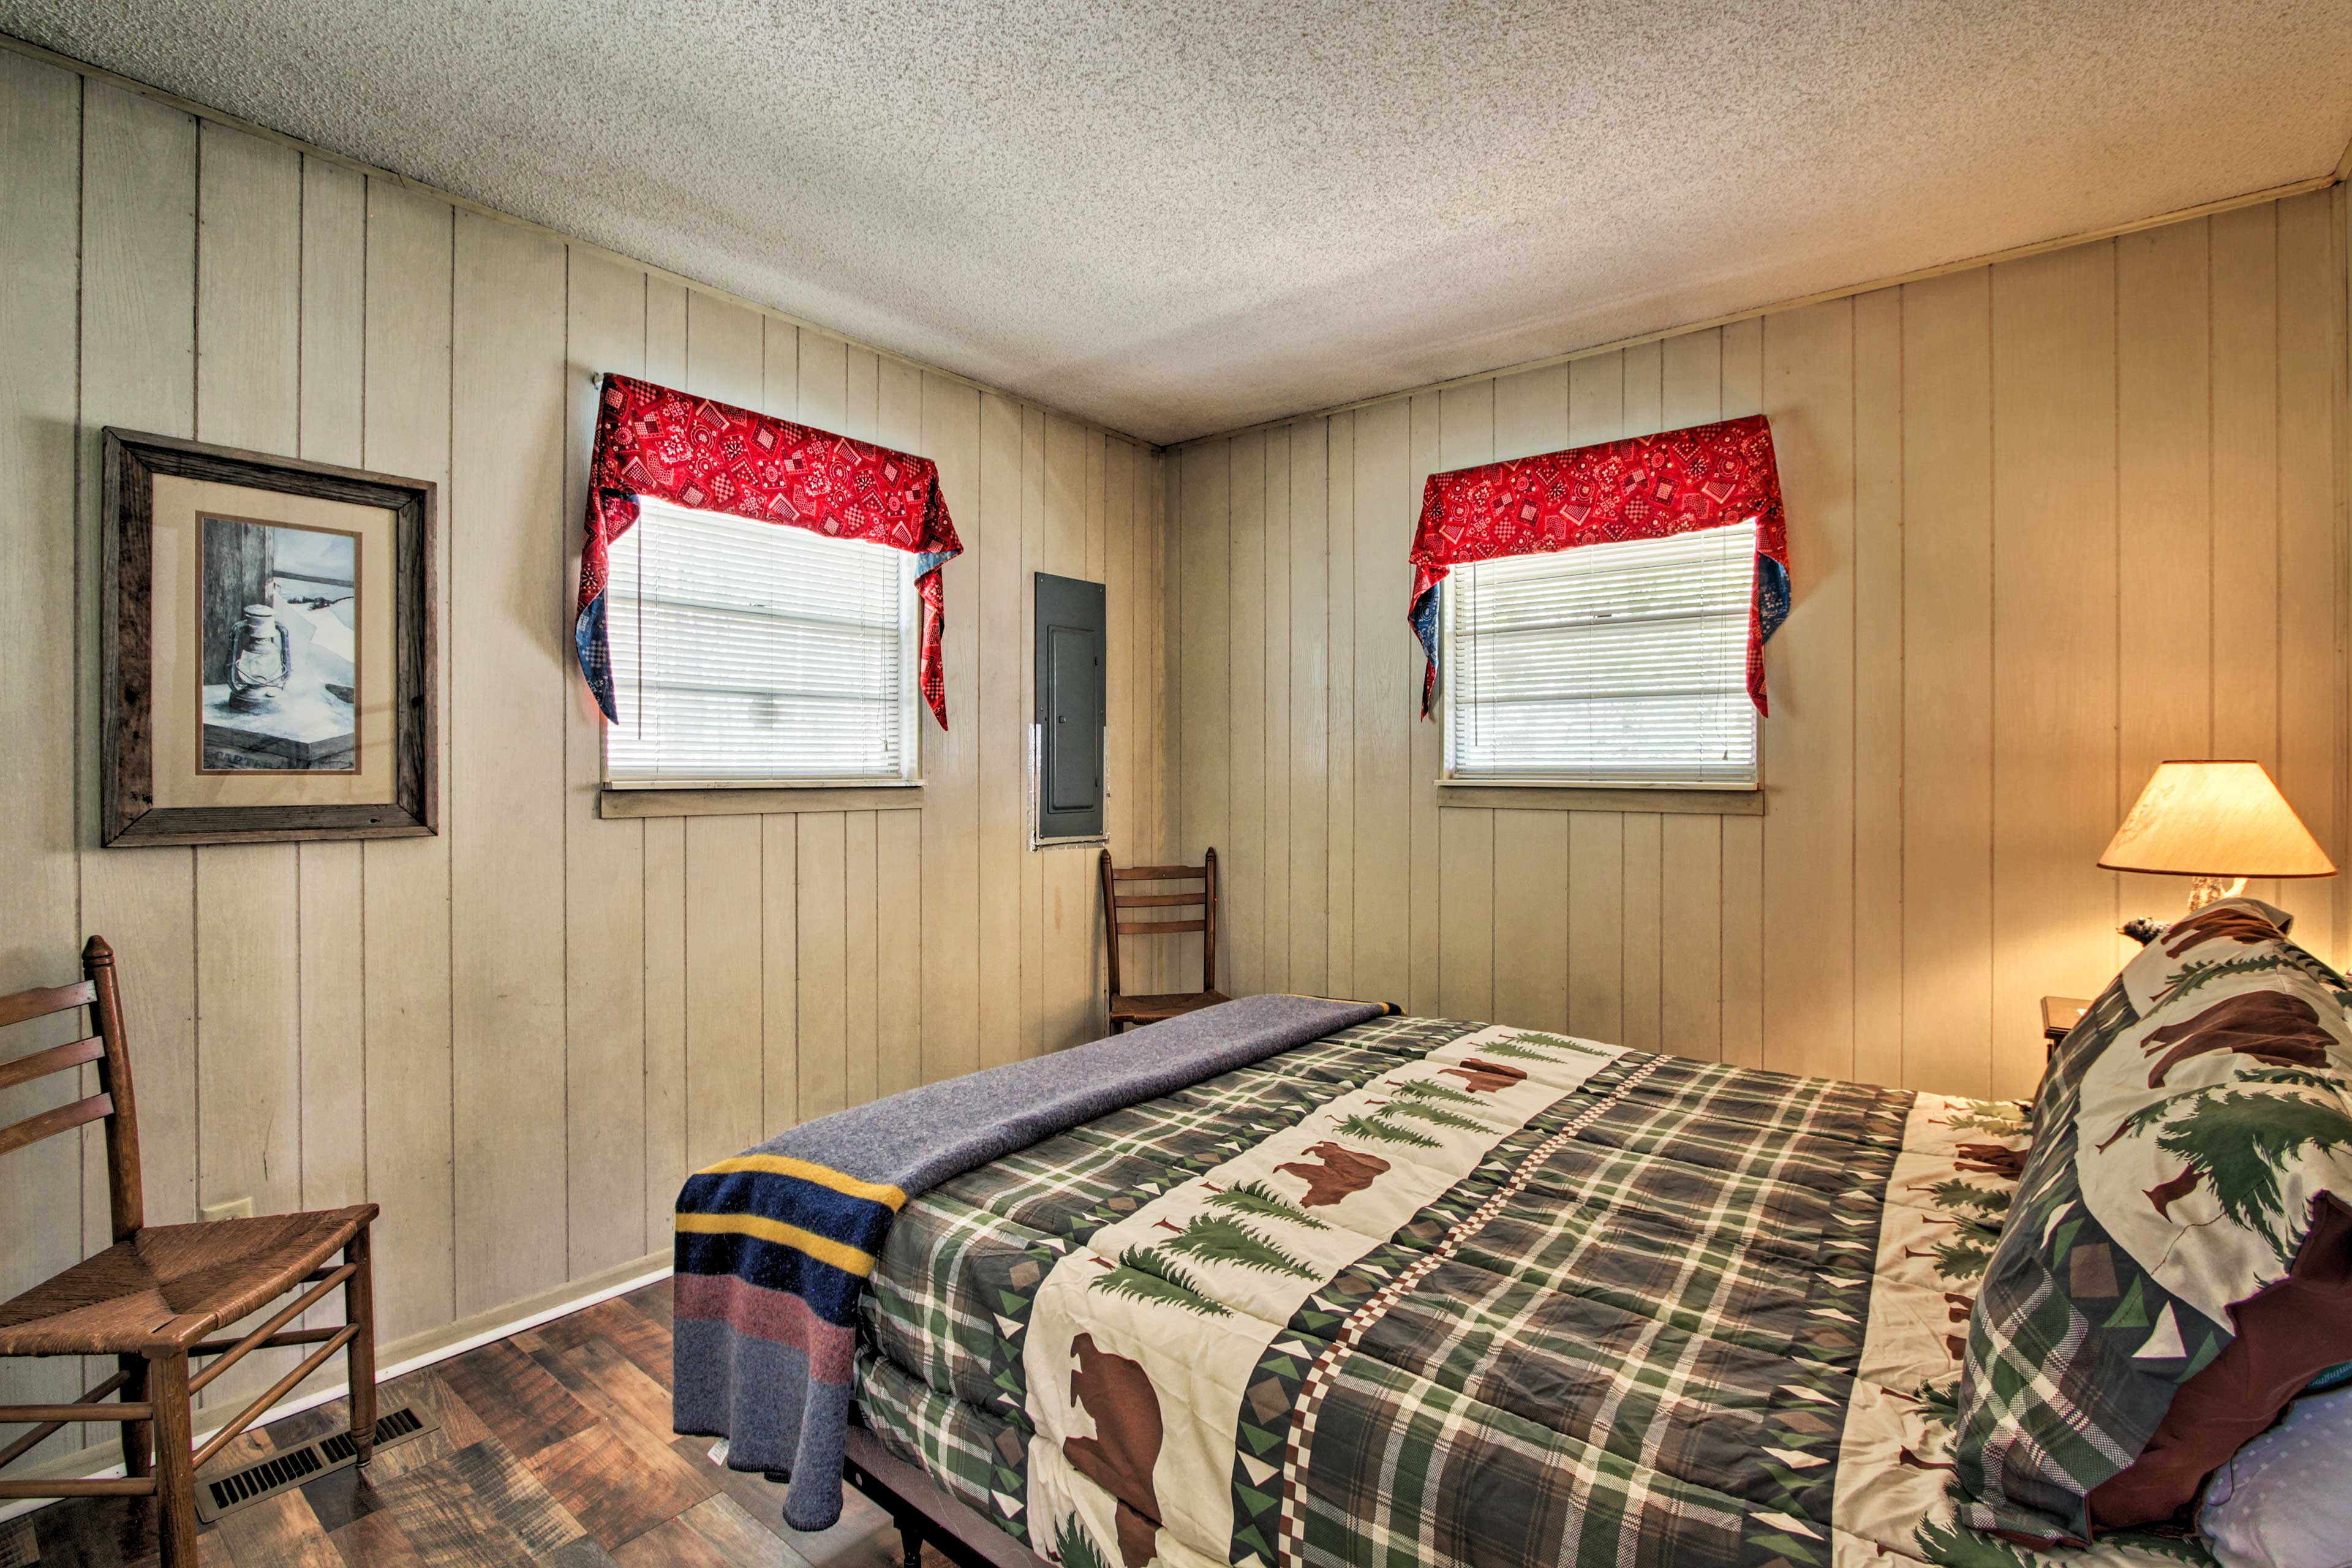 Rustic mountain-themed decor accents the cabin.